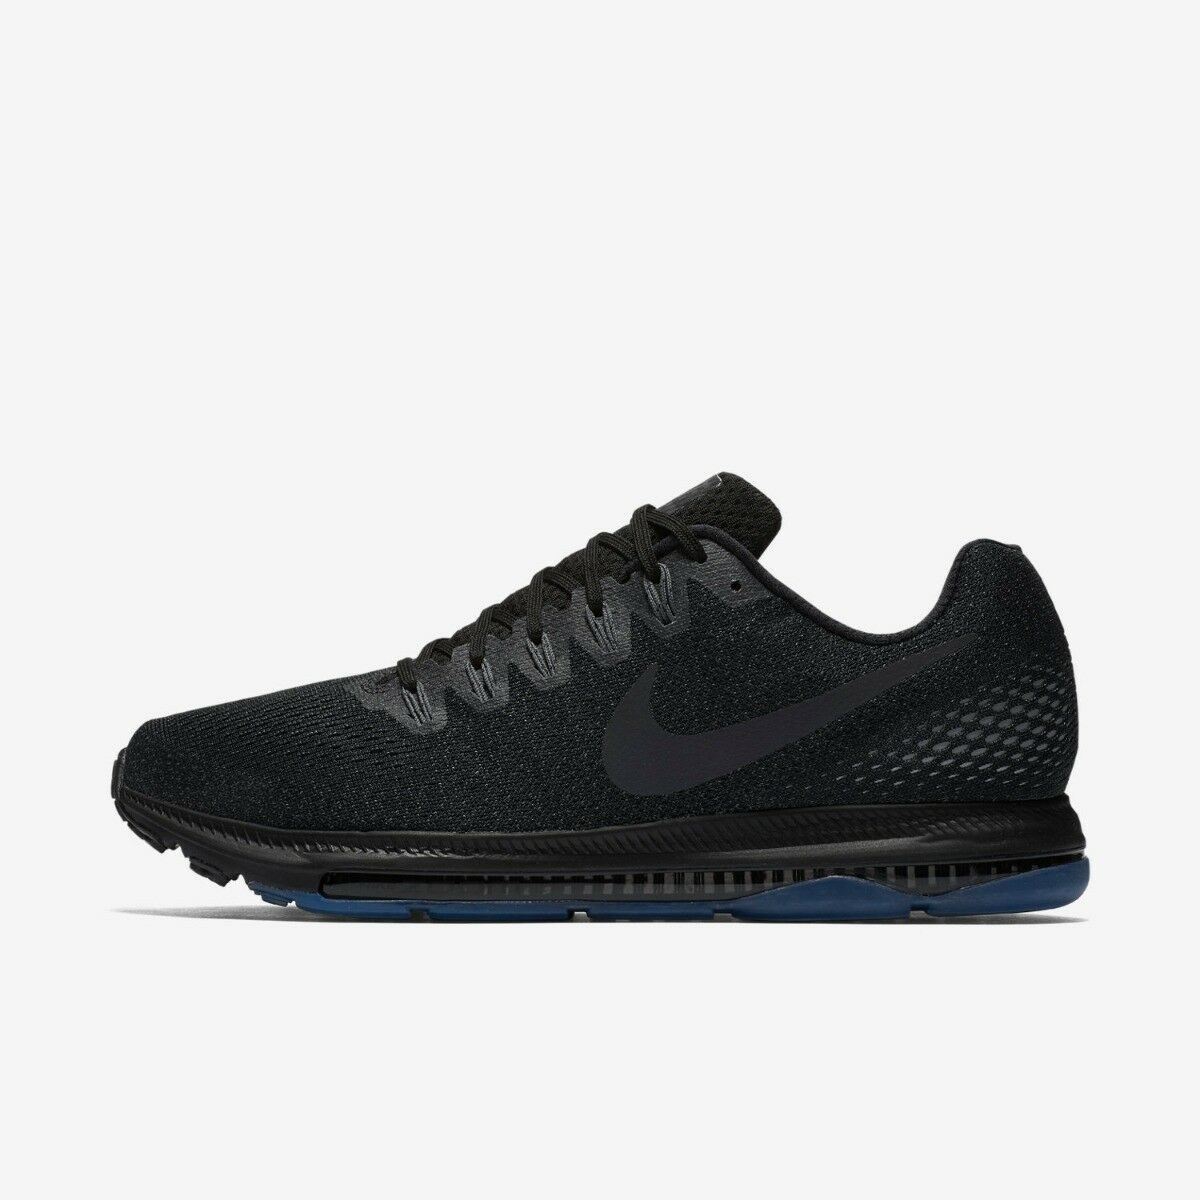 Nike Zoom All Out Low Mens Running Trainer shoes Size 7.5 - 8.5 Black New Runner